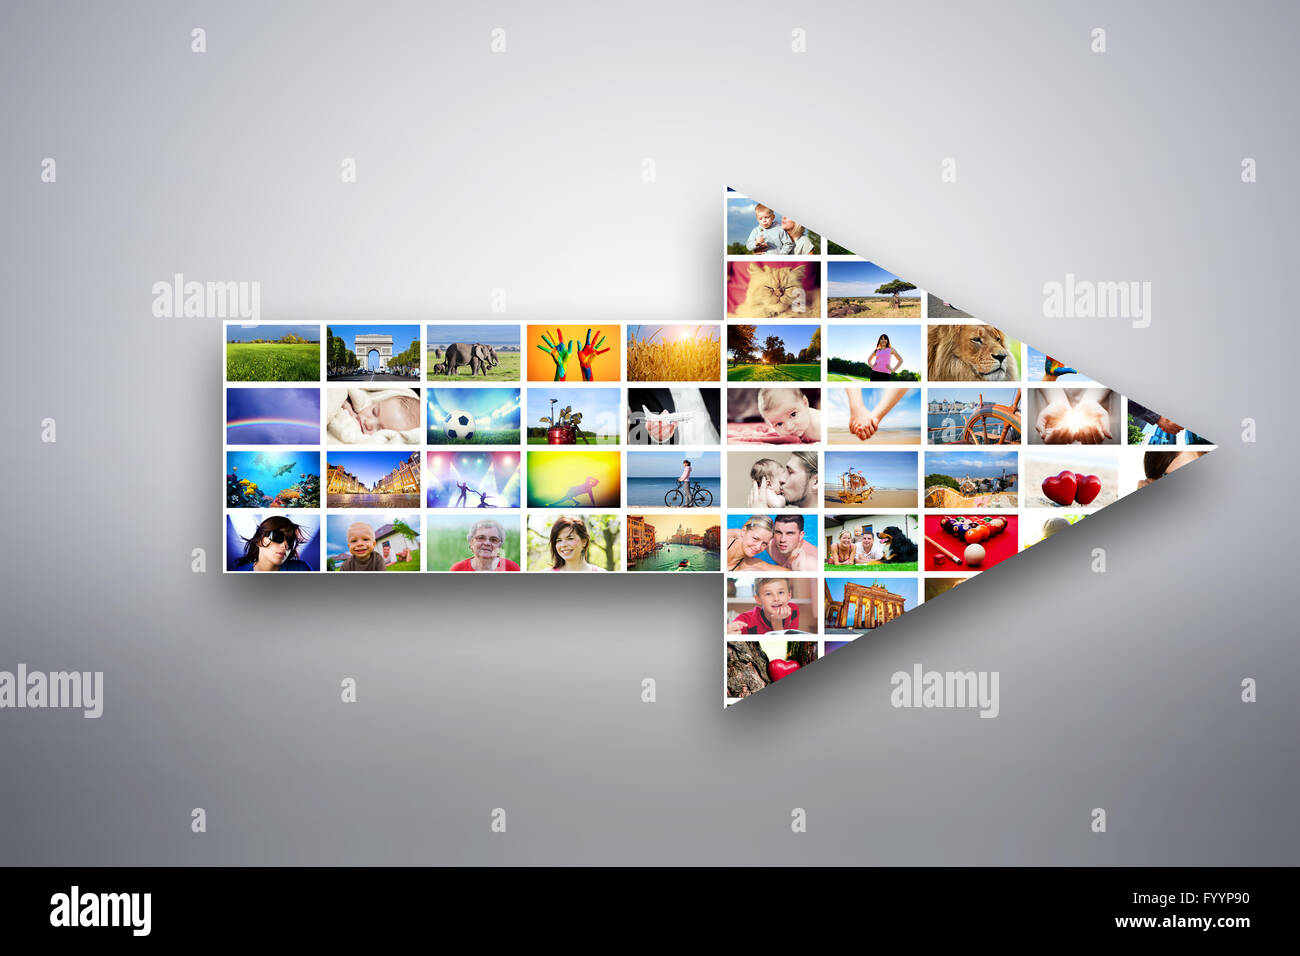 Arrow design element made of pictures - Stock Image